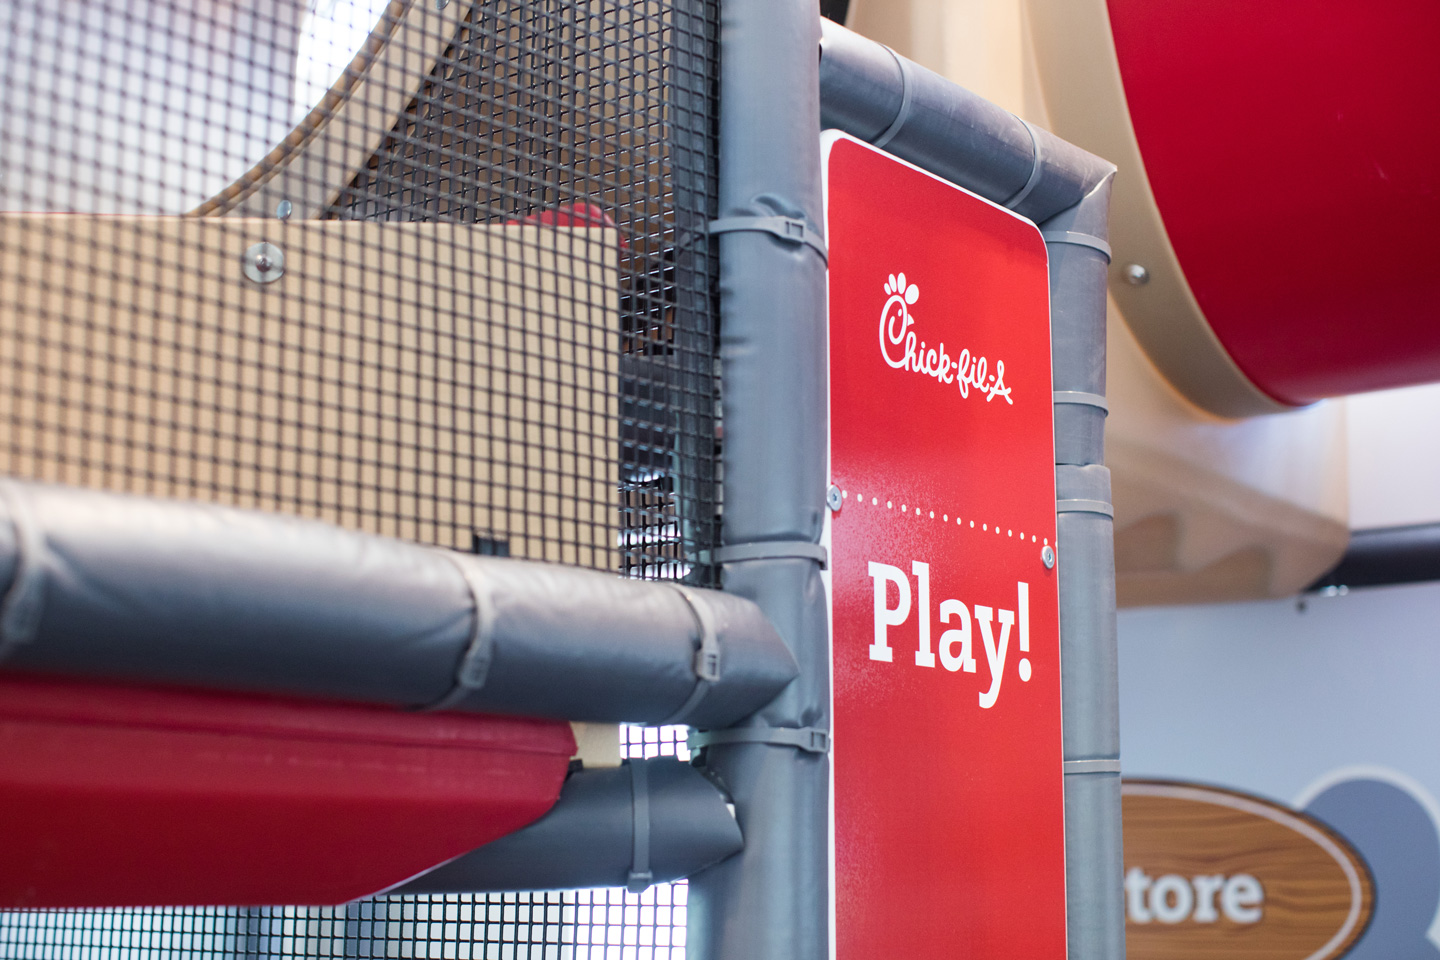 The Parent's Guide to Chick-fil-A | Chick-fil-A